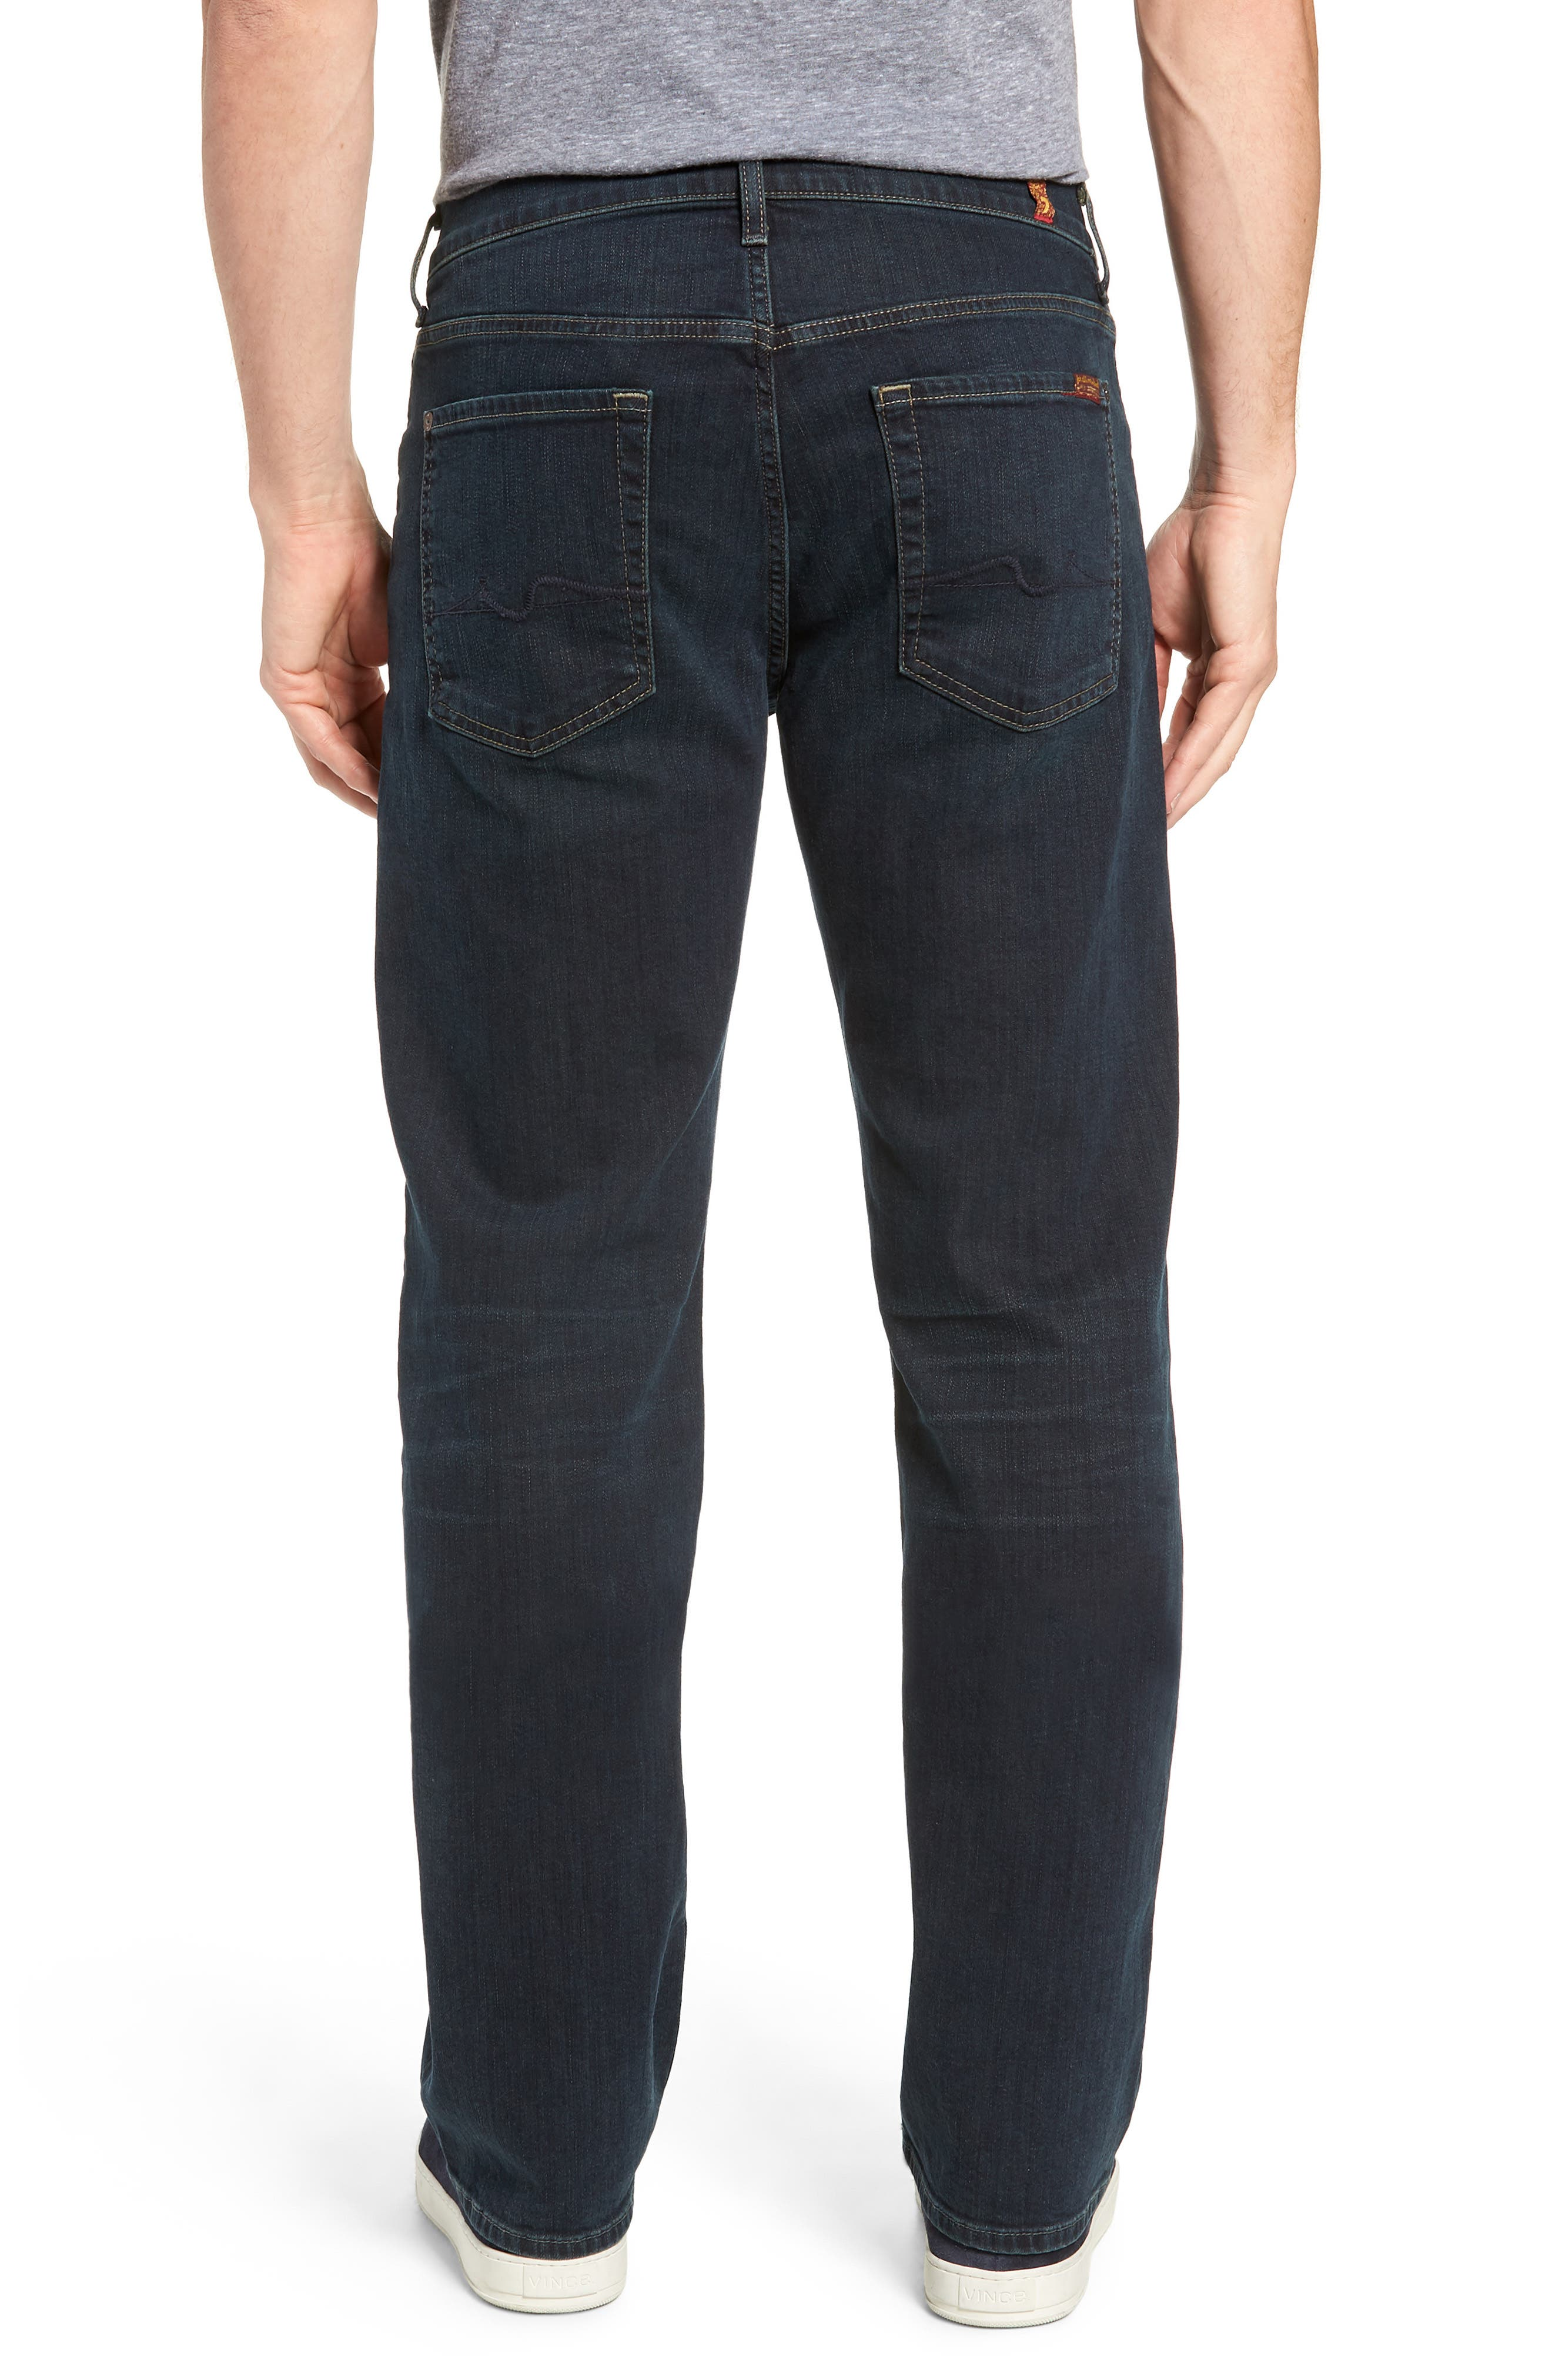 Austyn Relaxed Fit Jeans,                             Alternate thumbnail 2, color,                             CONTRA